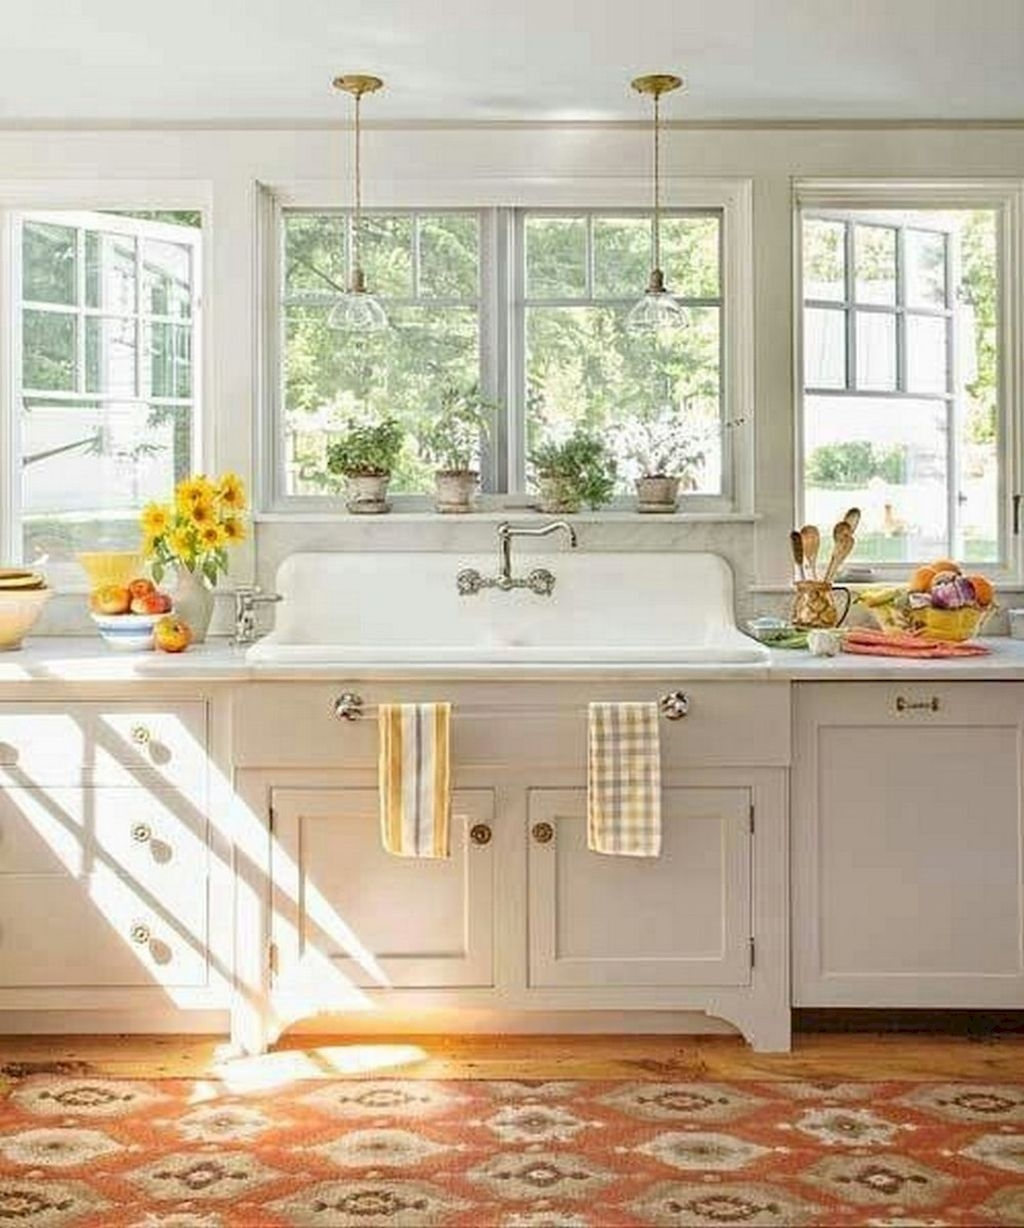 Gorgeus Farmhouse Kitchen Sink Design Ideas 41